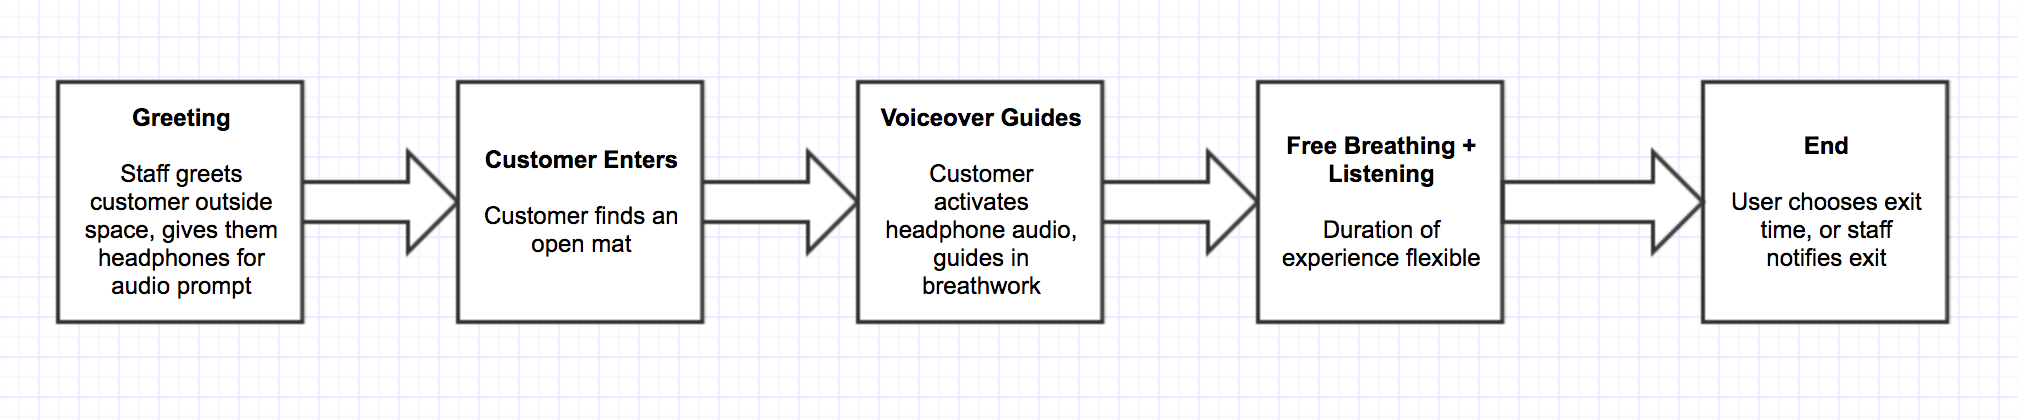 customer-experience-flow-gliffy-v03.png